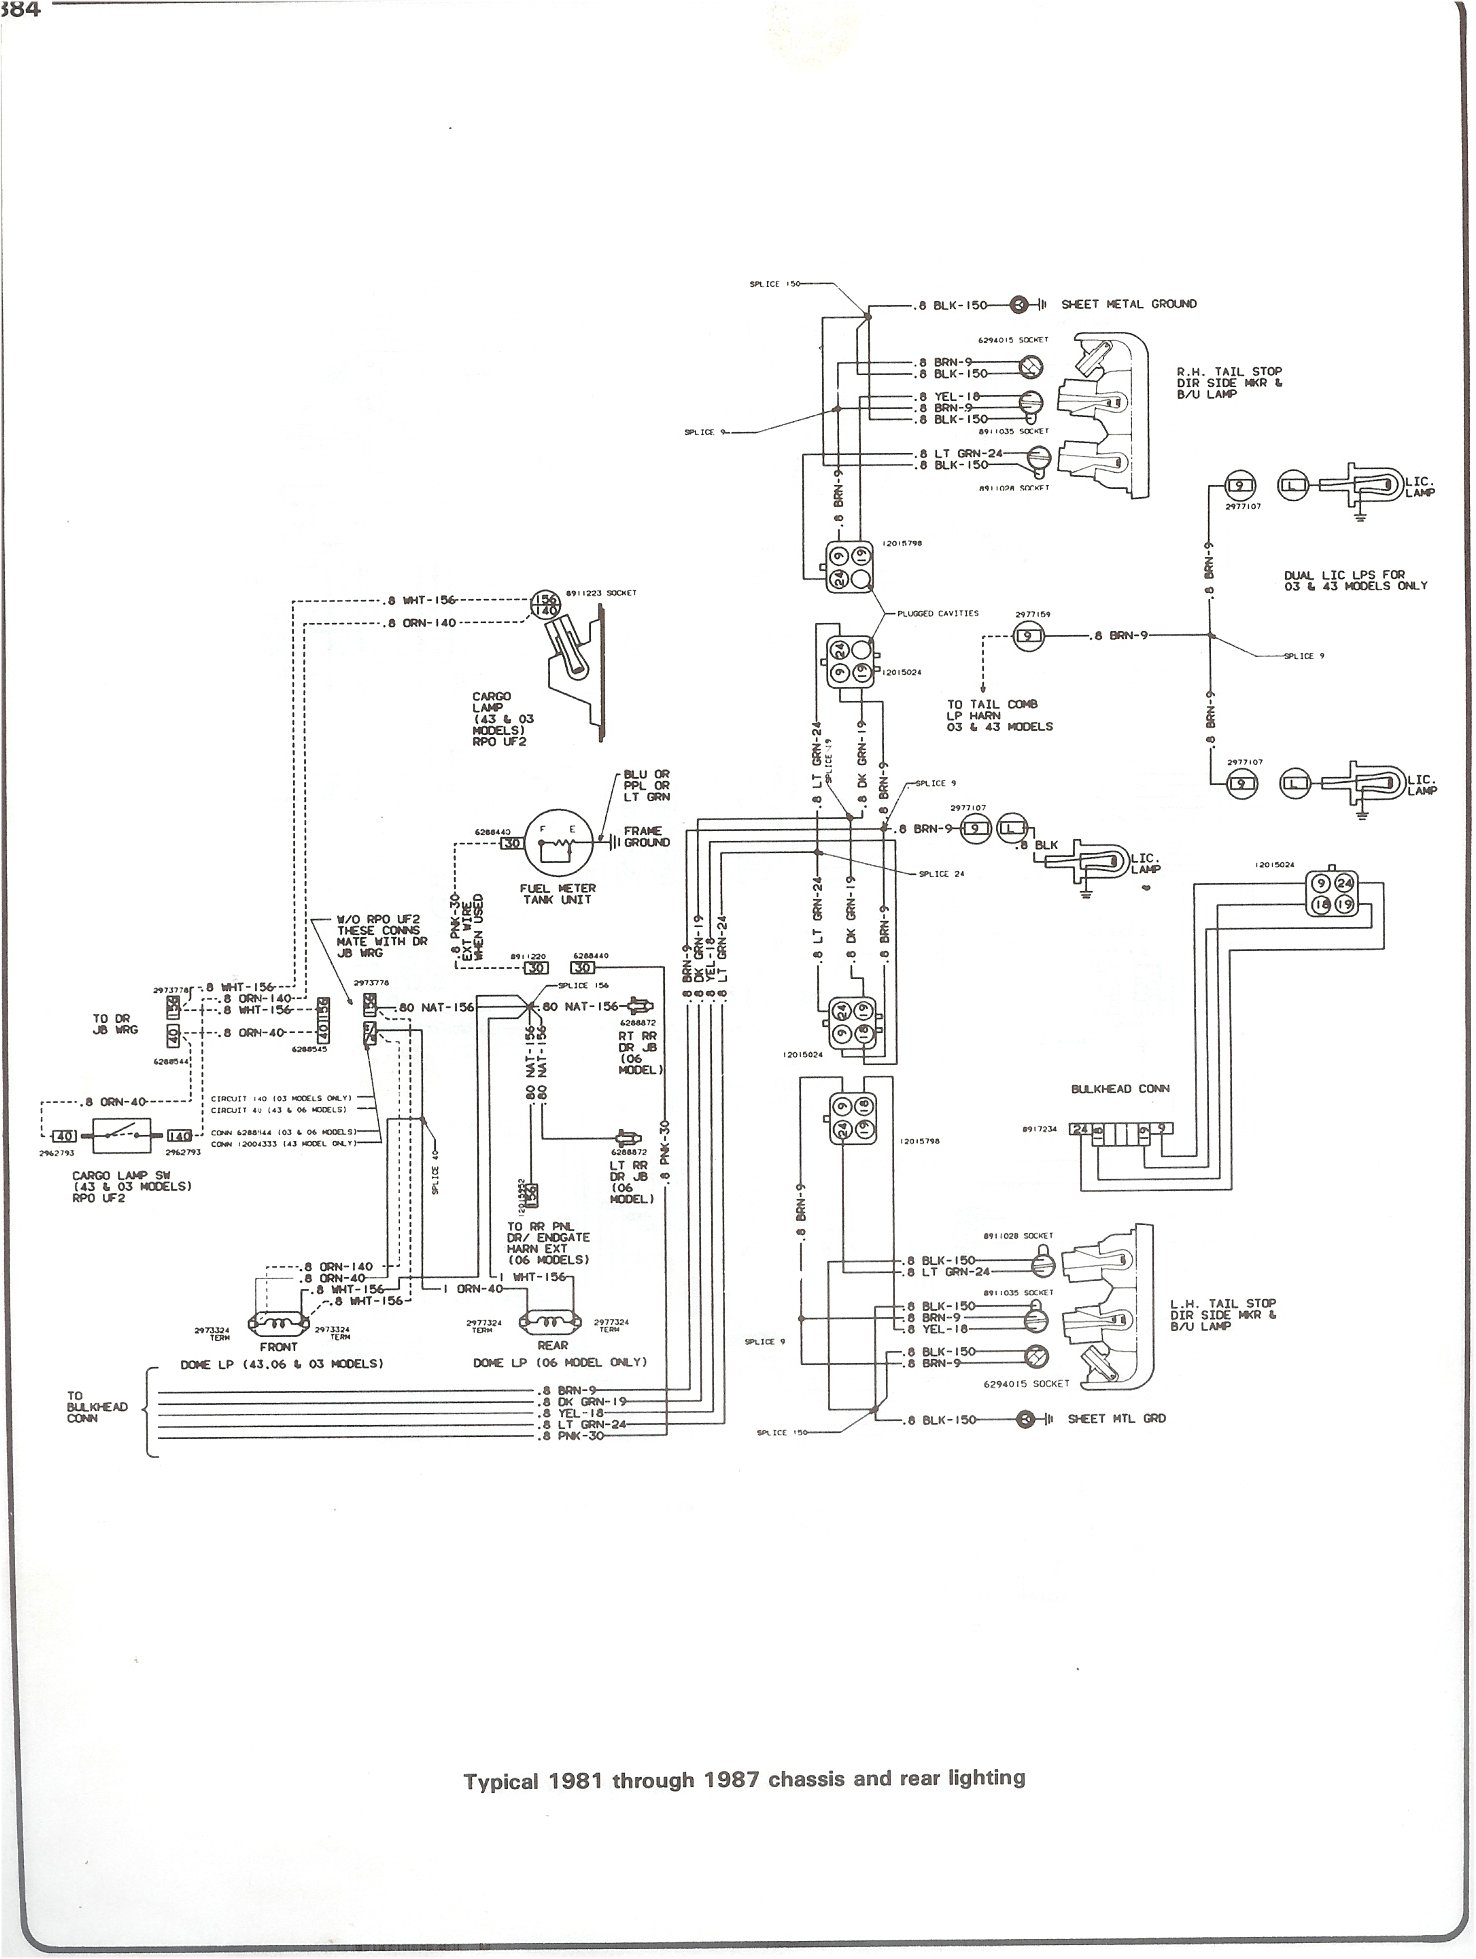 Chevy Silverado Drawing At Free For Personal Use Lighting Circuit Wiring Diagram On Basic Electrical Diagrams 1476x1959 Complete 73 87